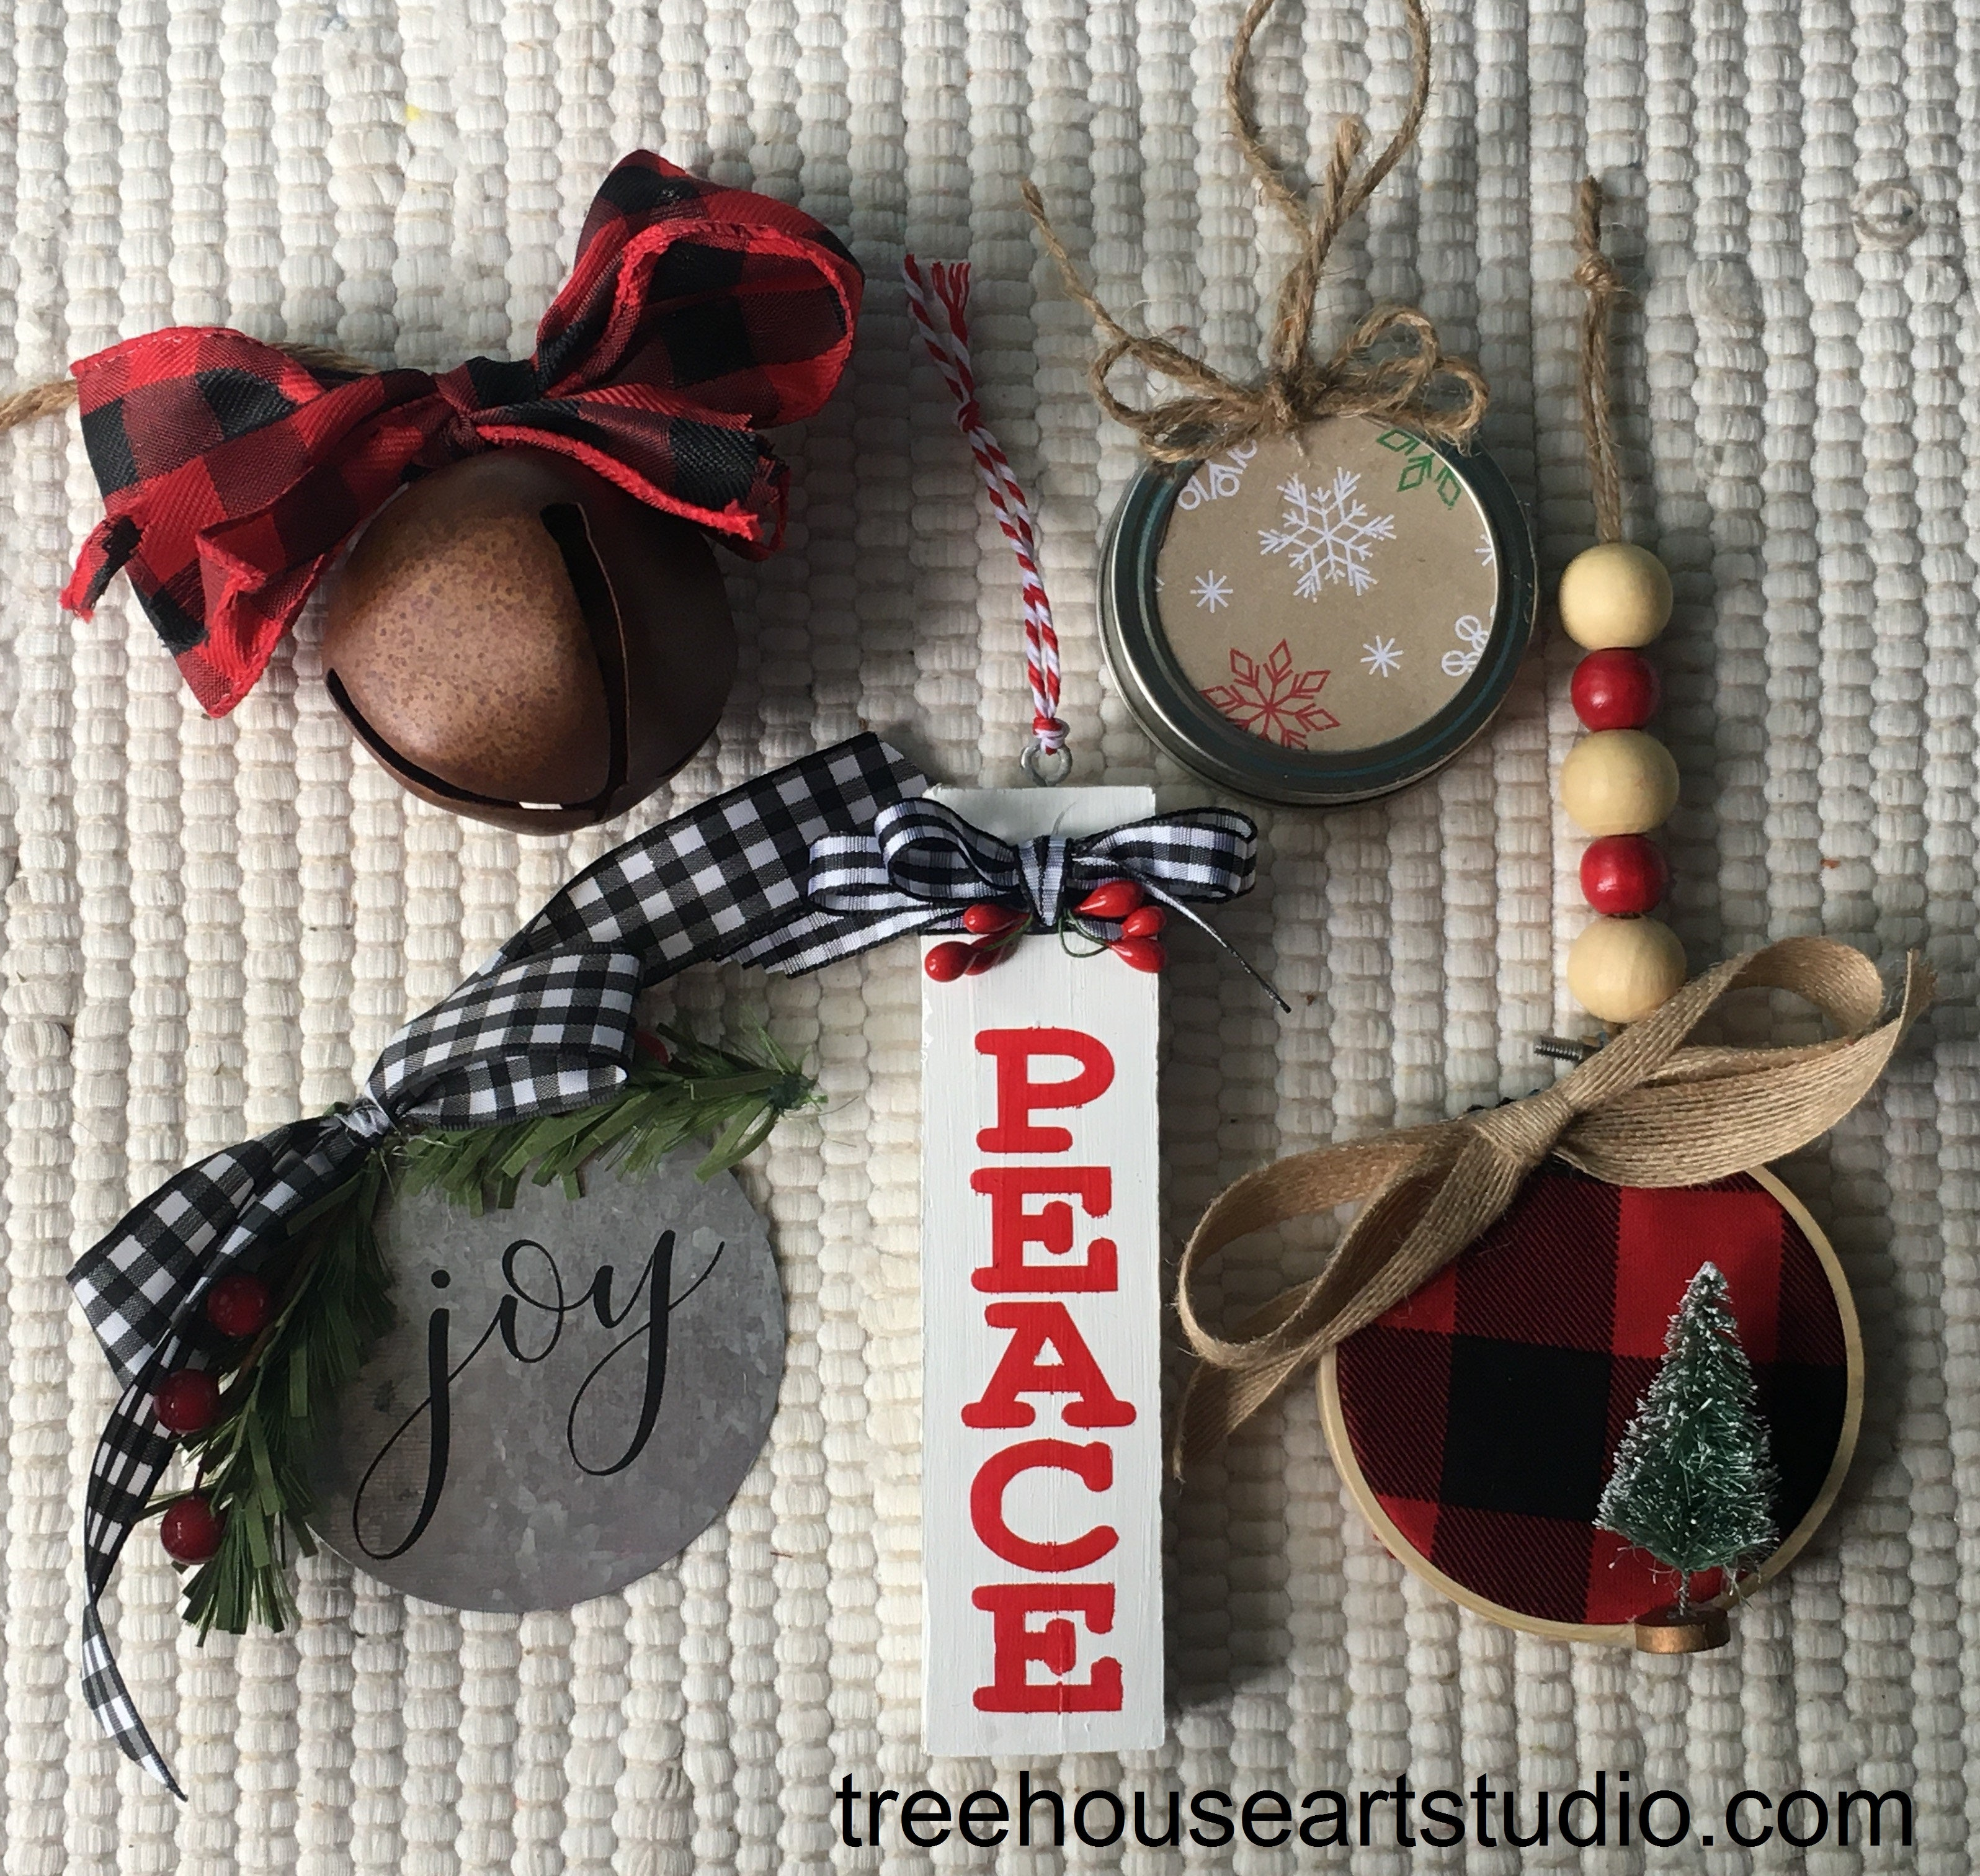 ornament making workshop, ladies day out, craft classes, diy farmhouse ornaments